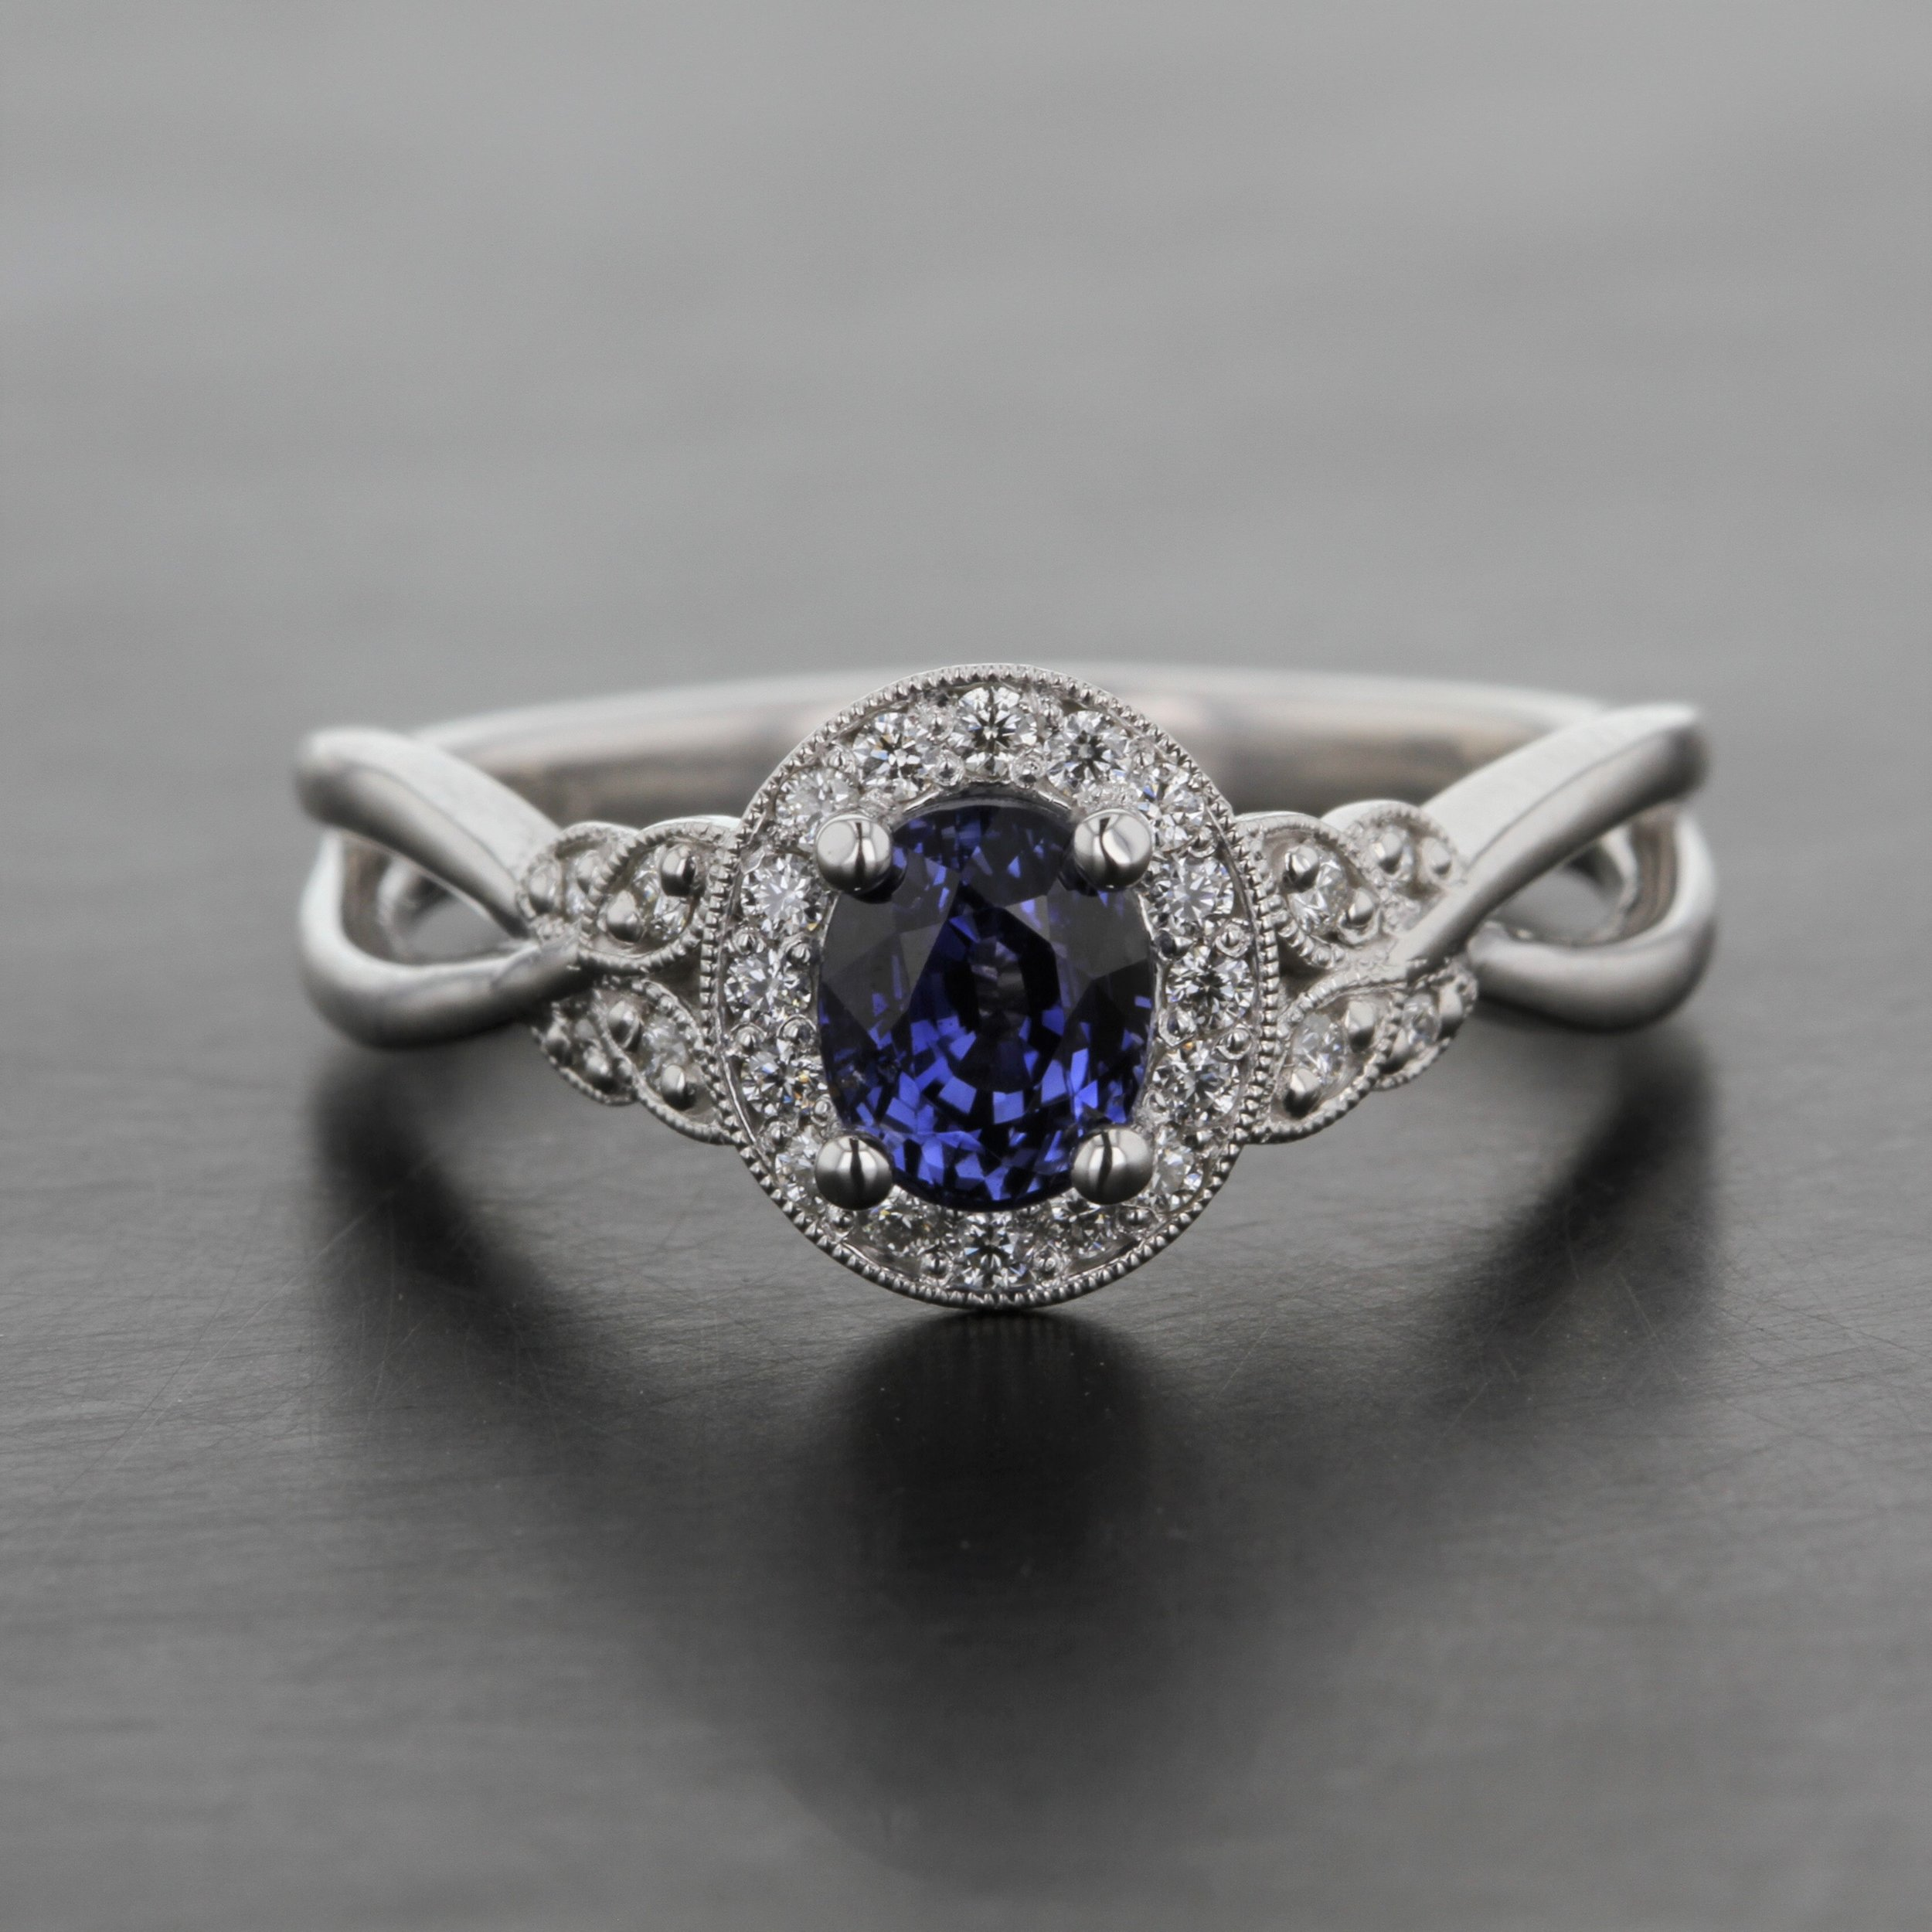 oval-natural-blue-sapphire-vine-floral-diamond-halo-custom-engagement-ring.jpg